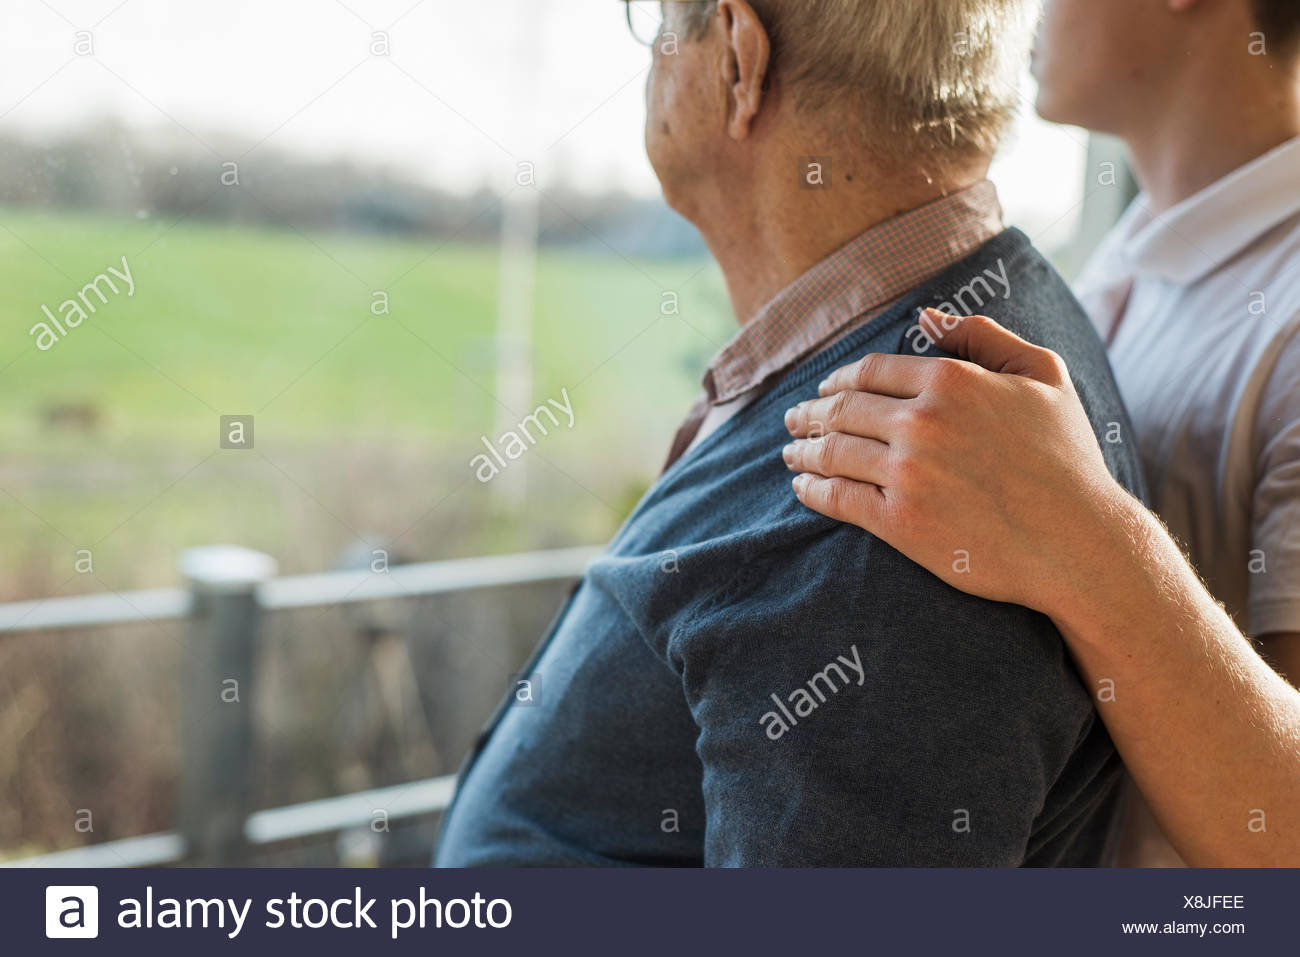 Young man's hand on the shoulder of a senior man - Stock Image